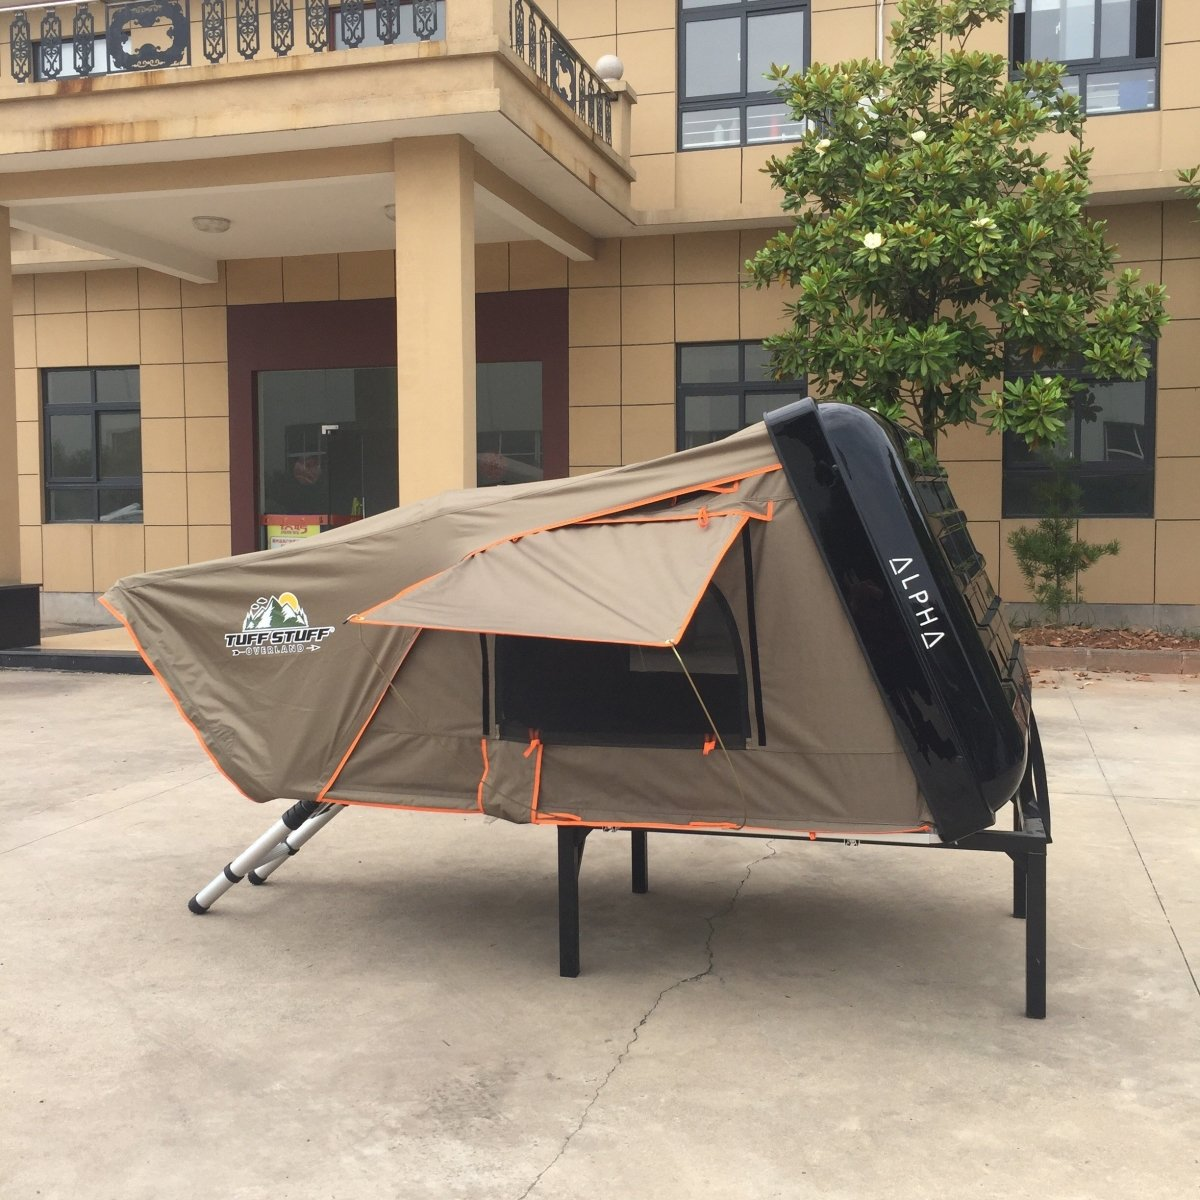 Tuff Stuff® ALPHA II™ Hard Top Side Open Tent, Black, 2 Person - Tuff Stuff Overland - Roof Top Tent